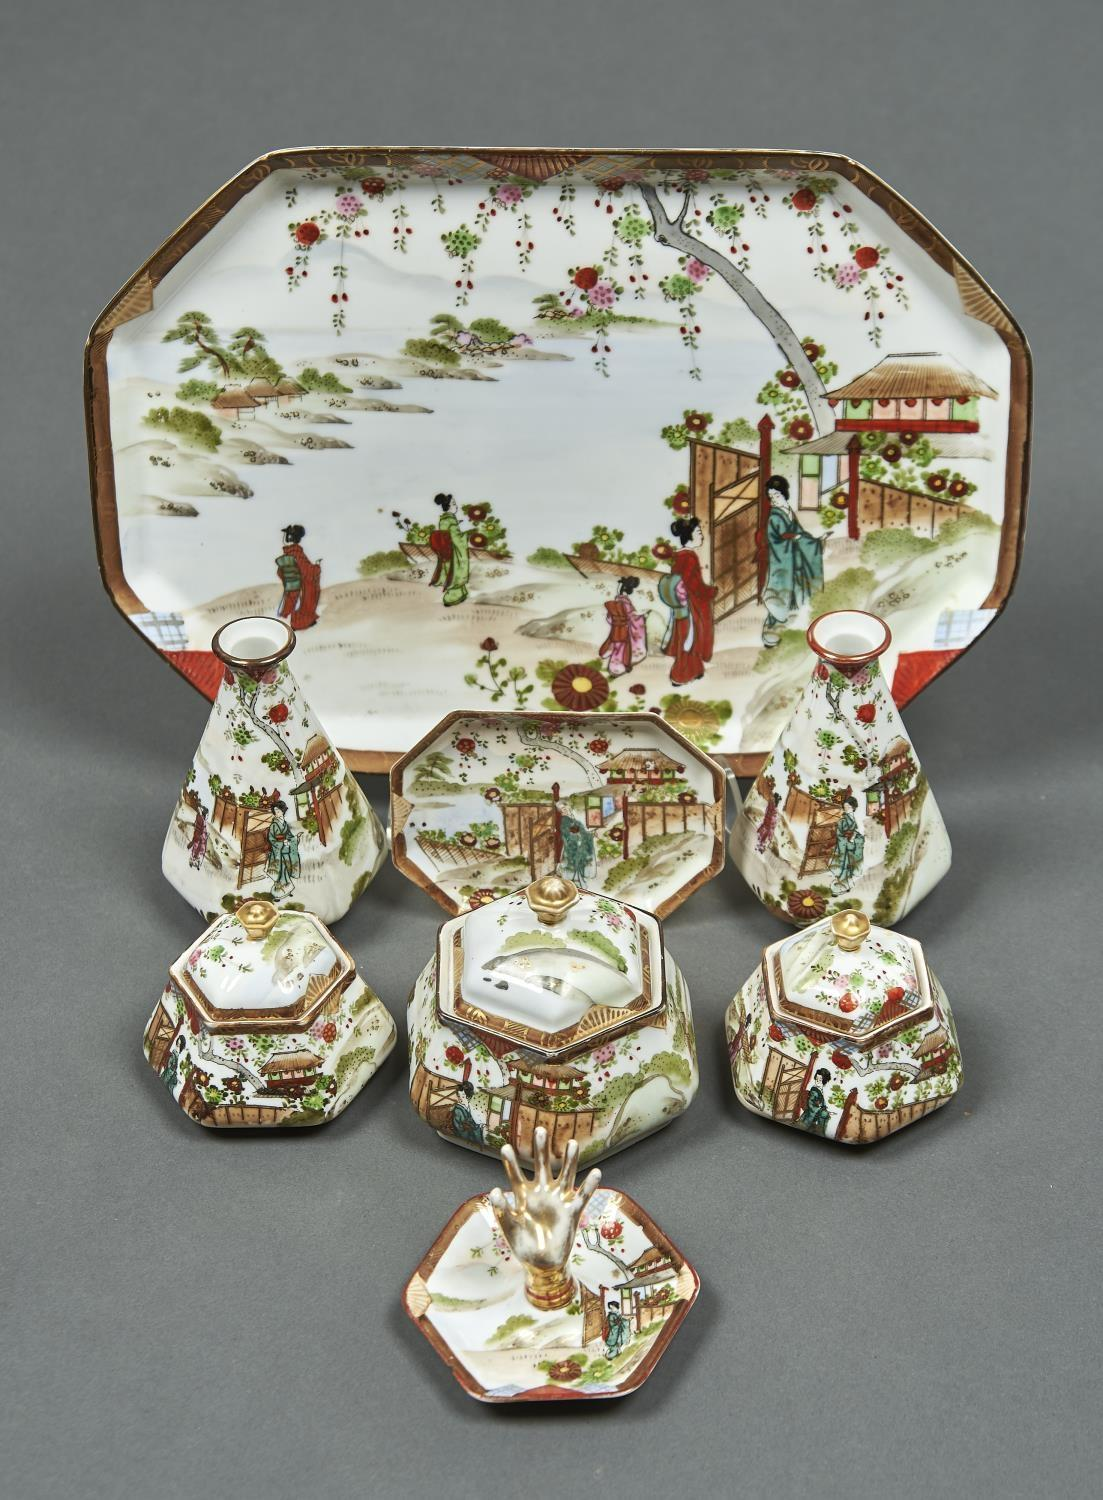 A NORITAKE DRESSING TABLE SET, EARLY 20TH C, DECORATED WITH BEJIN IN A GARDEN, TRAY 33CM L,